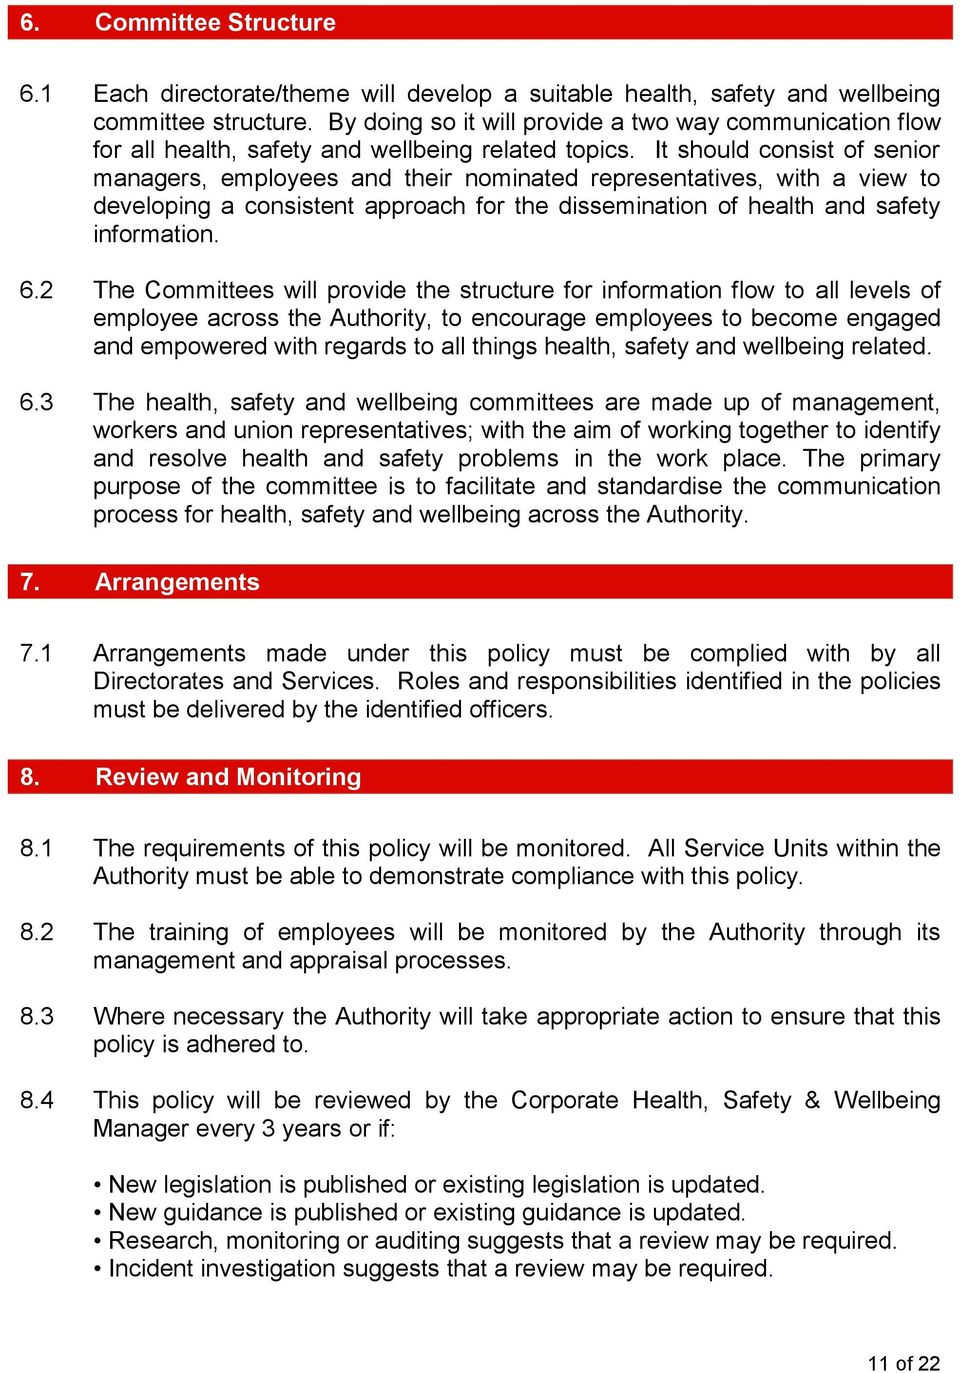 It should consist of senior managers, employees and their nominated representatives, with a view to developing a consistent approach for the dissemination of health and safety information. 6.